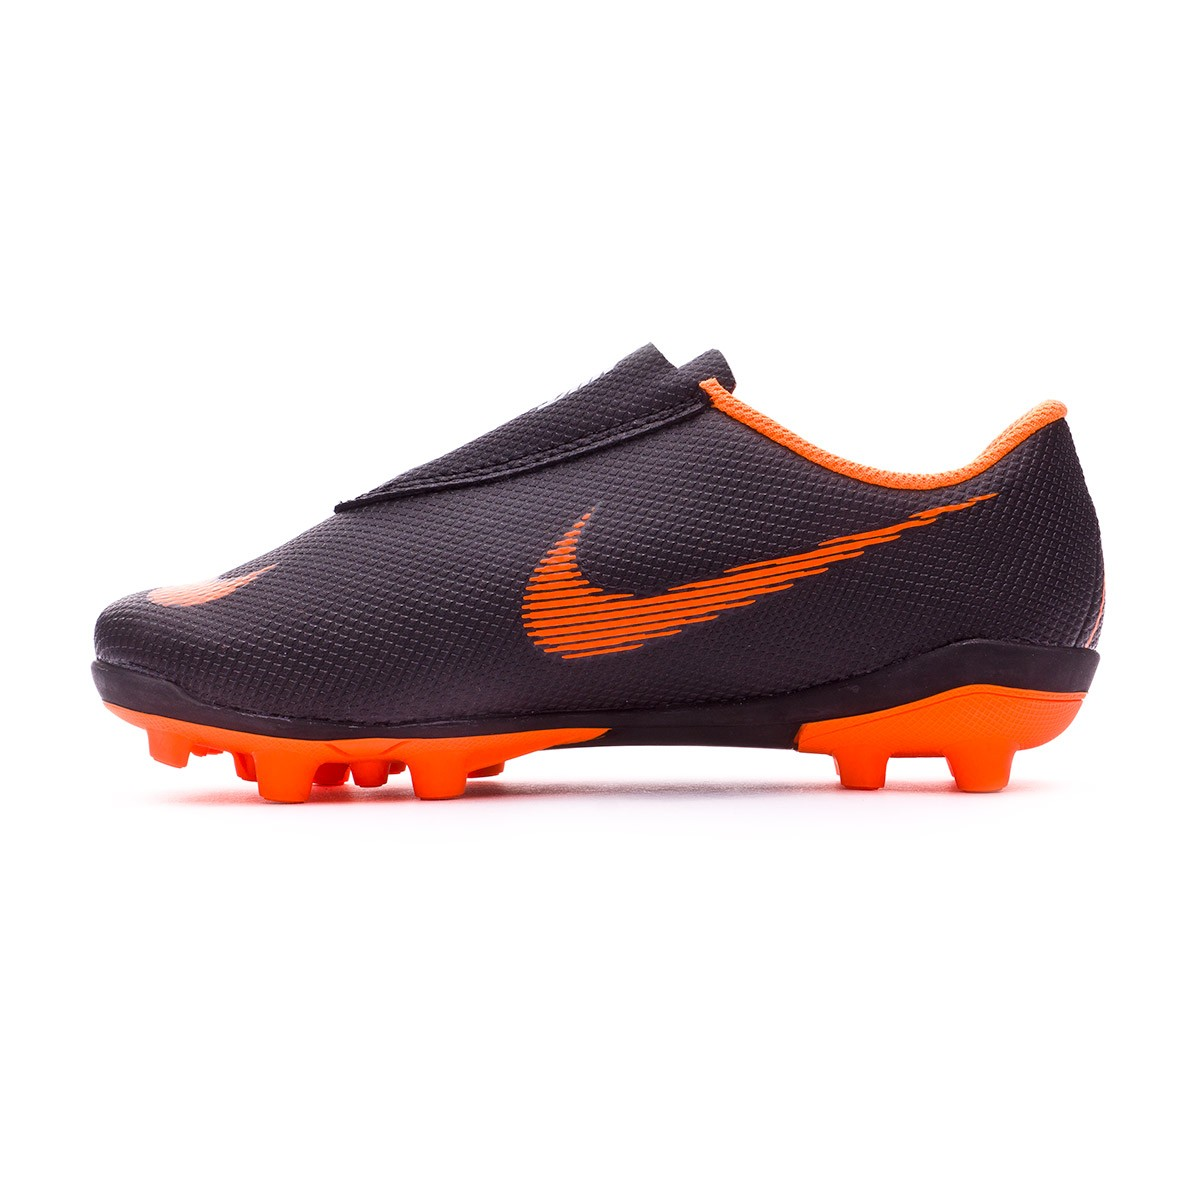 e60bda97b Football Boots Nike Kids Mercurial Vapor XII Club PS Velcro MG Black-Total  orange-White - Tienda de fútbol Fútbol Emotion